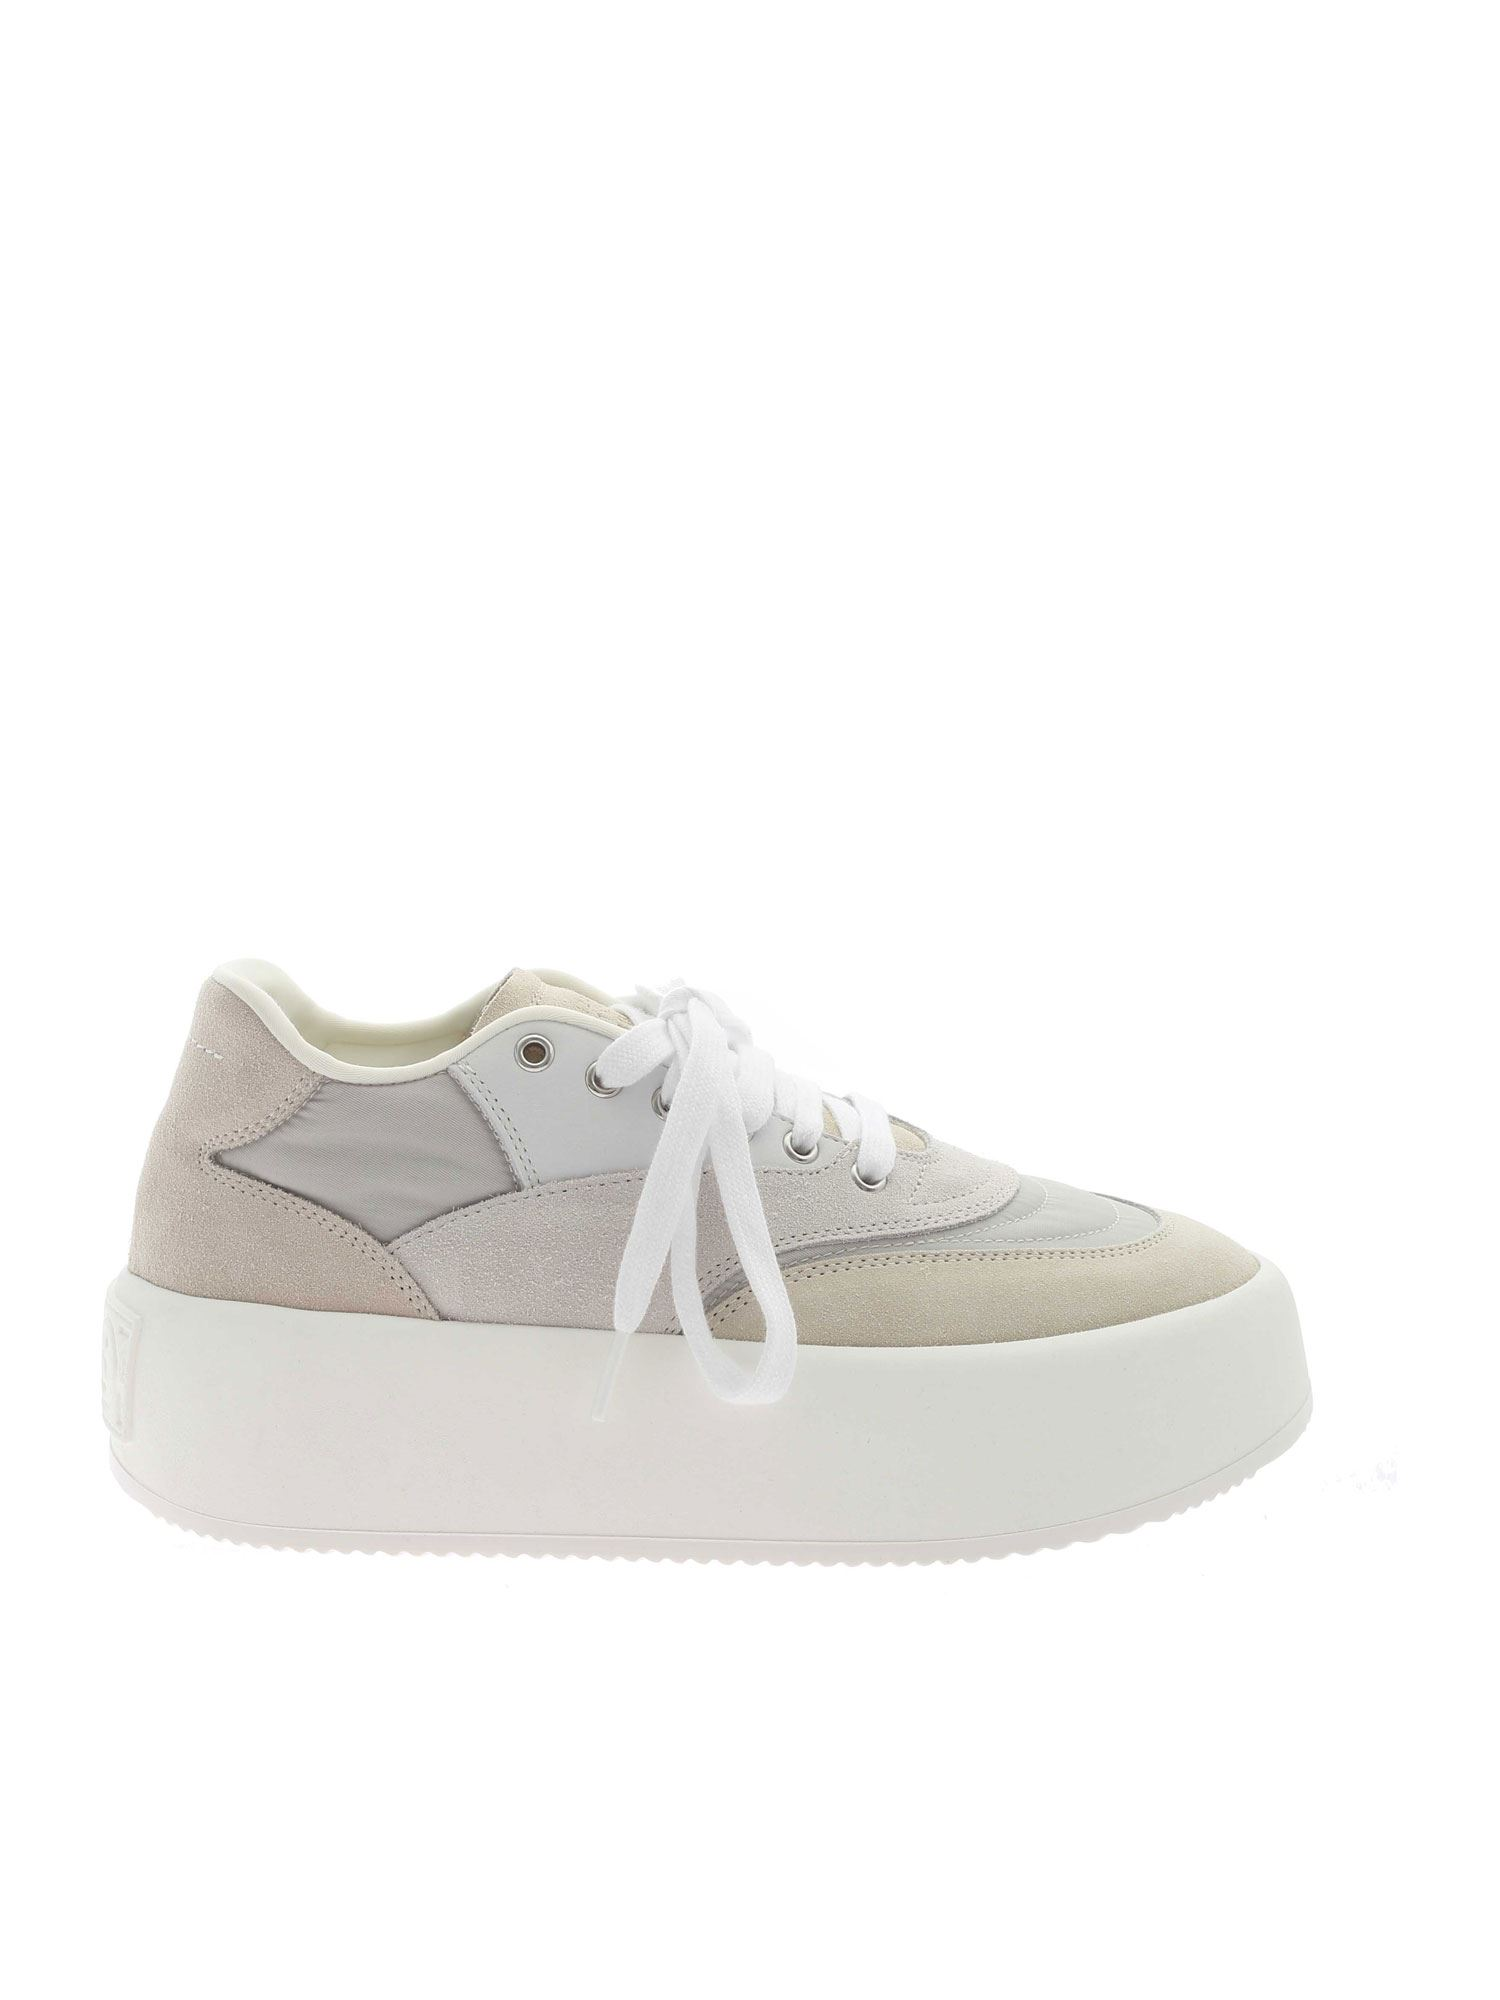 Mm6 Maison Margiela FABRIC AND SUEDE SNEAKERS IN IVORY COLOR